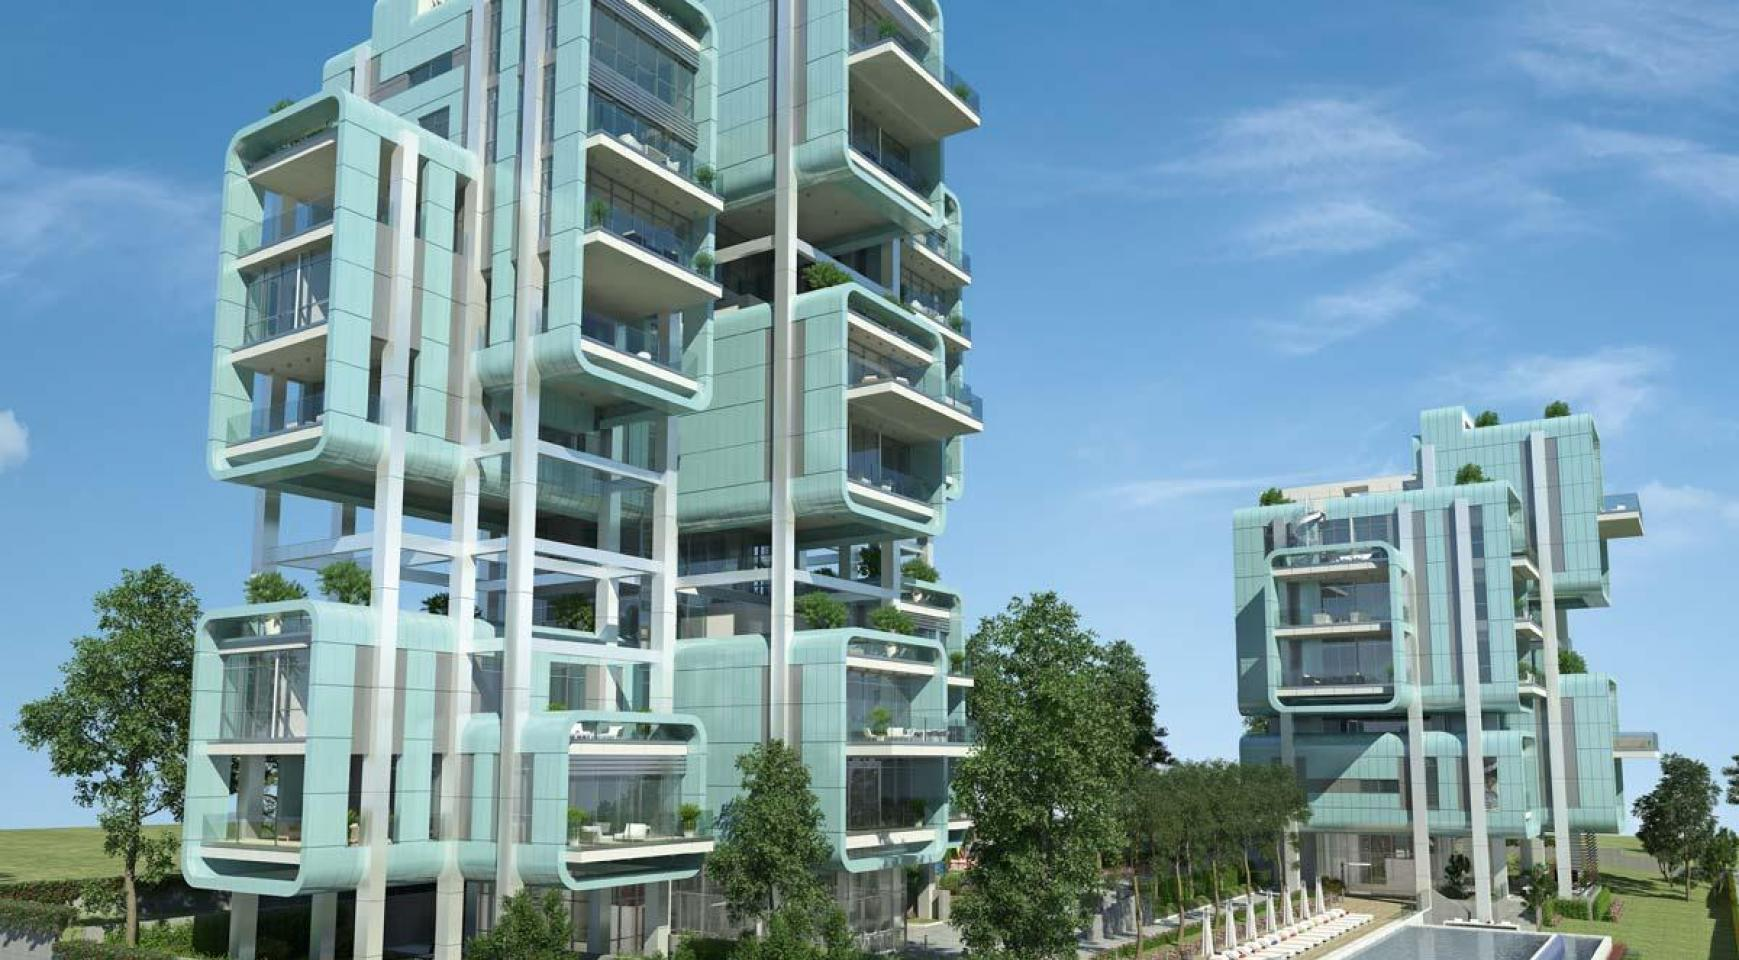 Elite 2 Bedroom Apartment with Roof Garden within a New Complex - 25